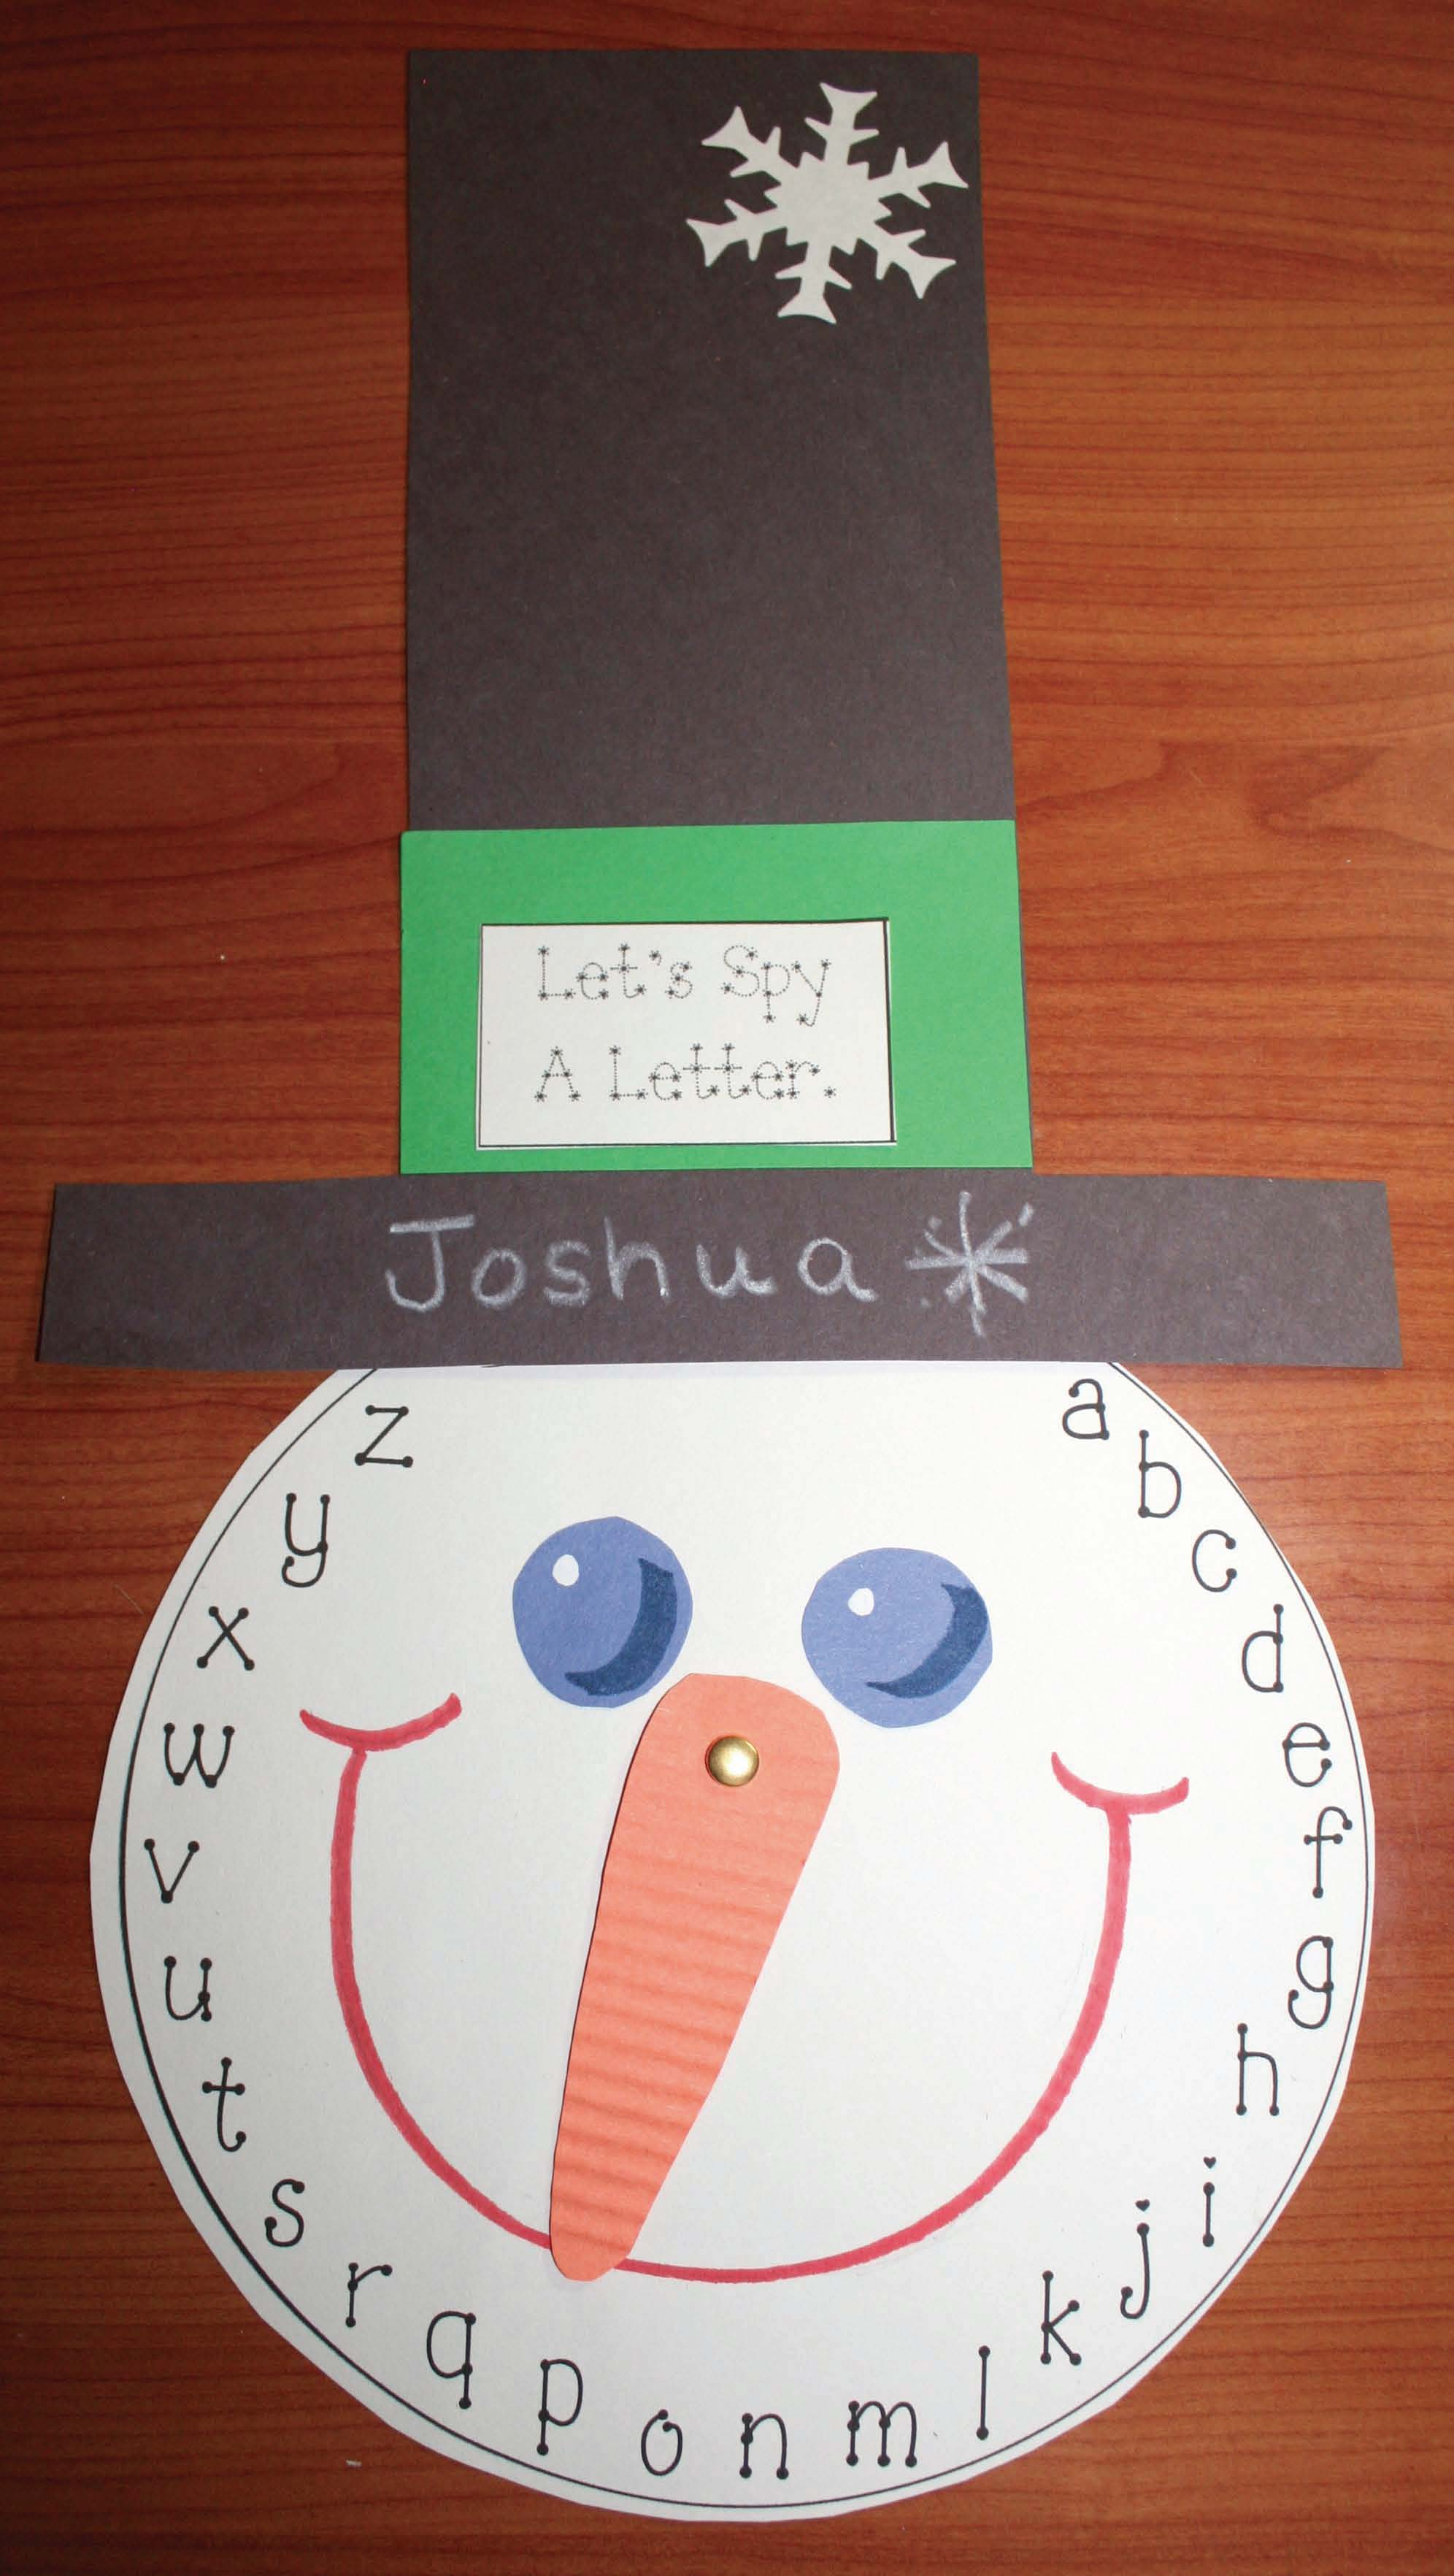 winter games, winter centers, math centers, math games, alphabet activities, alphabet assessments, snowman crafts, snowflake activities, snowman activities, winter alphabet cards, winter number cards, snowflake games, snowflake centers, snowflake number cards, penguin activities, penguin number cards, penguin games, penguin alphabet cards, new years activities, new years writing prompts, new year games, how many words can you make out of happy new year, christmas tree activities, puzzles, number puzzles, alphabet puzzles, football activities, football bulletin boards, bulletin boards for january, igloo activities, igloo crafts, fact family activities